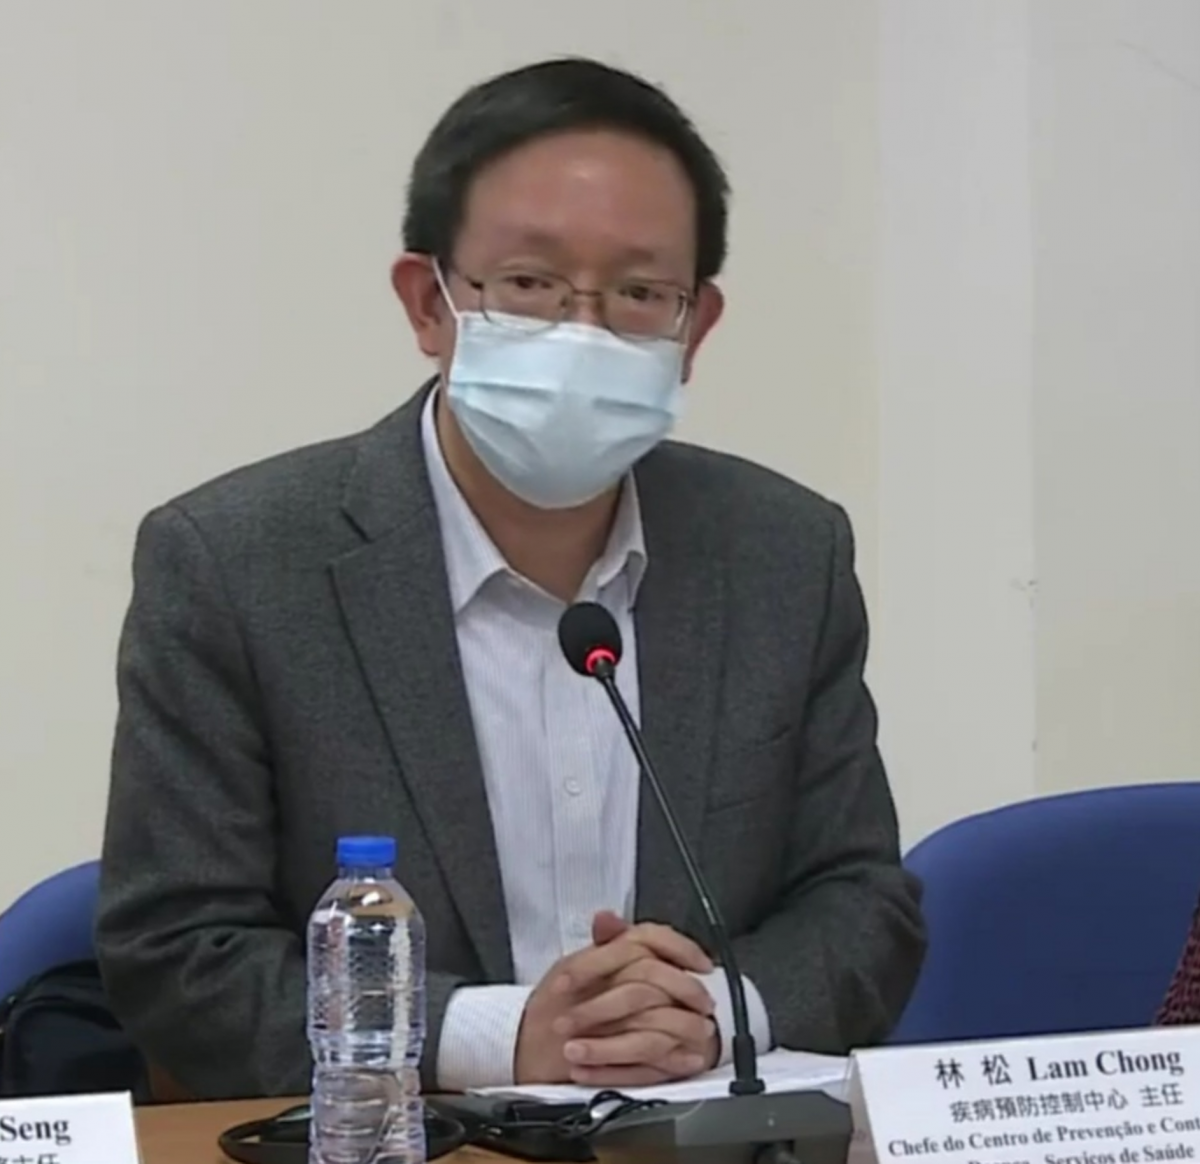 2 more patients diagnosed with COVID-19 visited Macau: SSM